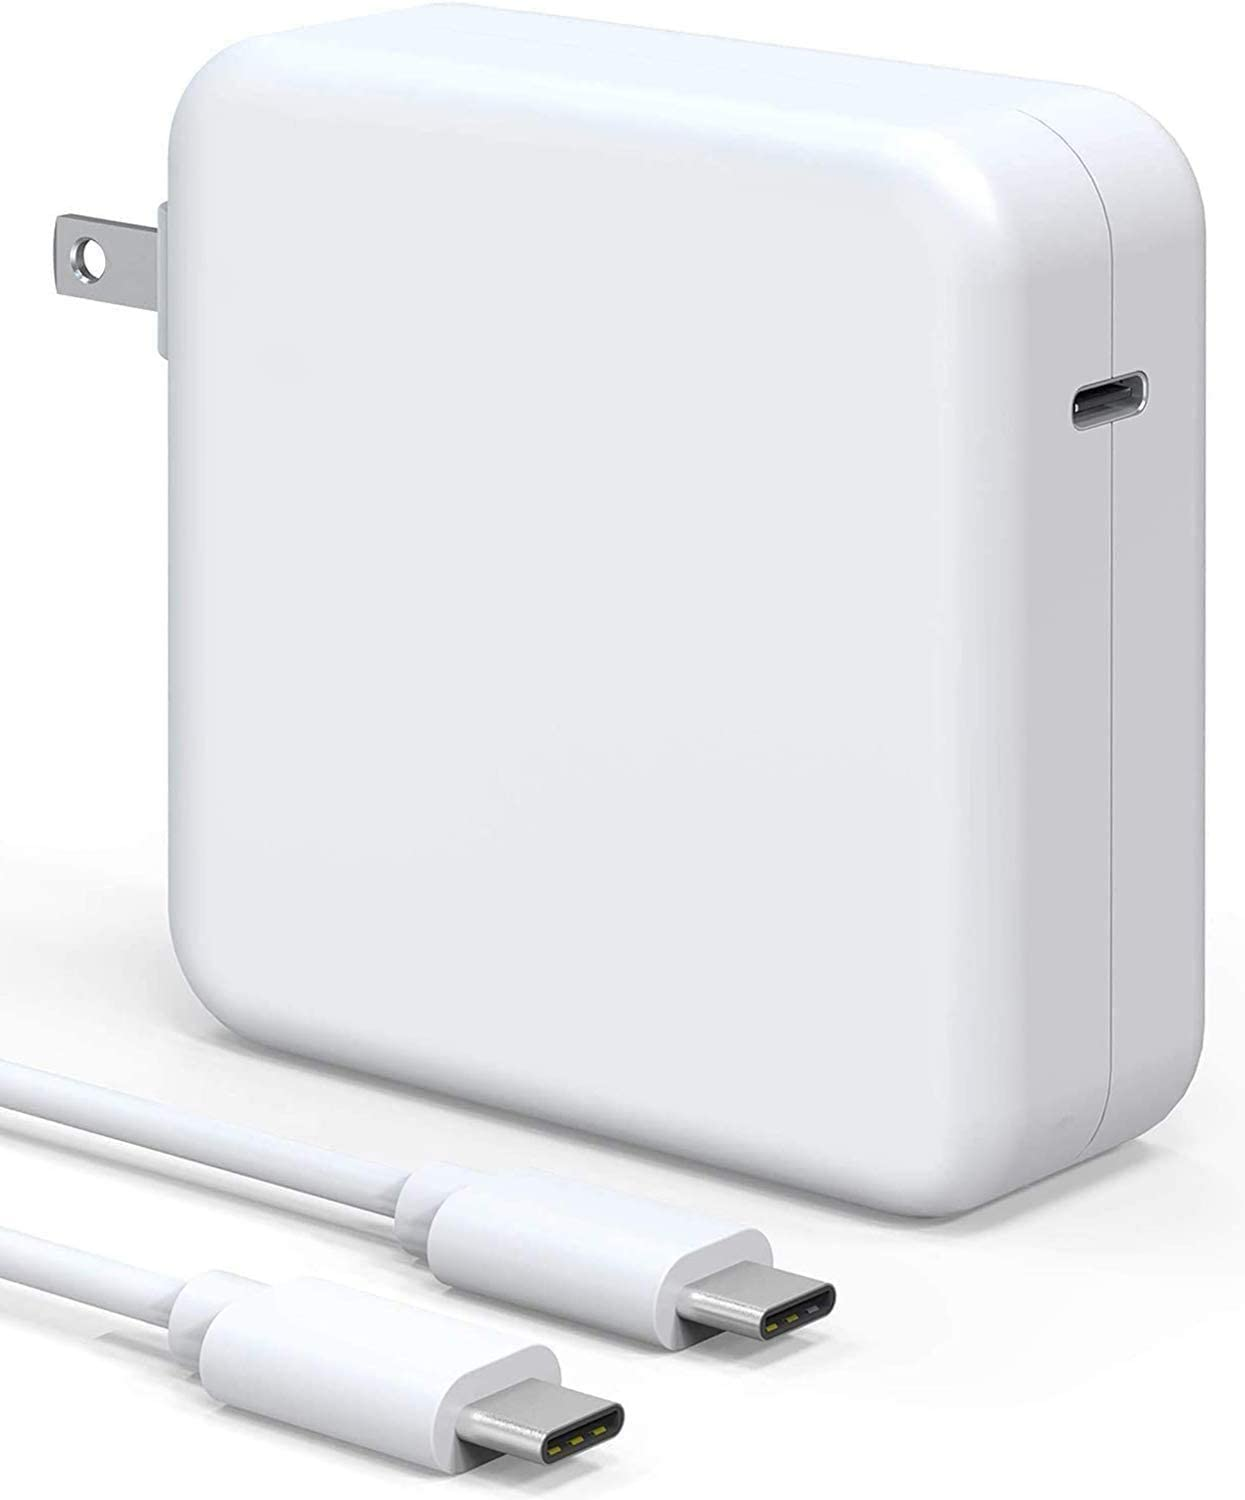 96W USB C Charger Power Adapter for Mac Pro 16, 15, 13 inch,New Mac Air 13 inch 2020/2019/2018 Foldable Plug Type C Interface